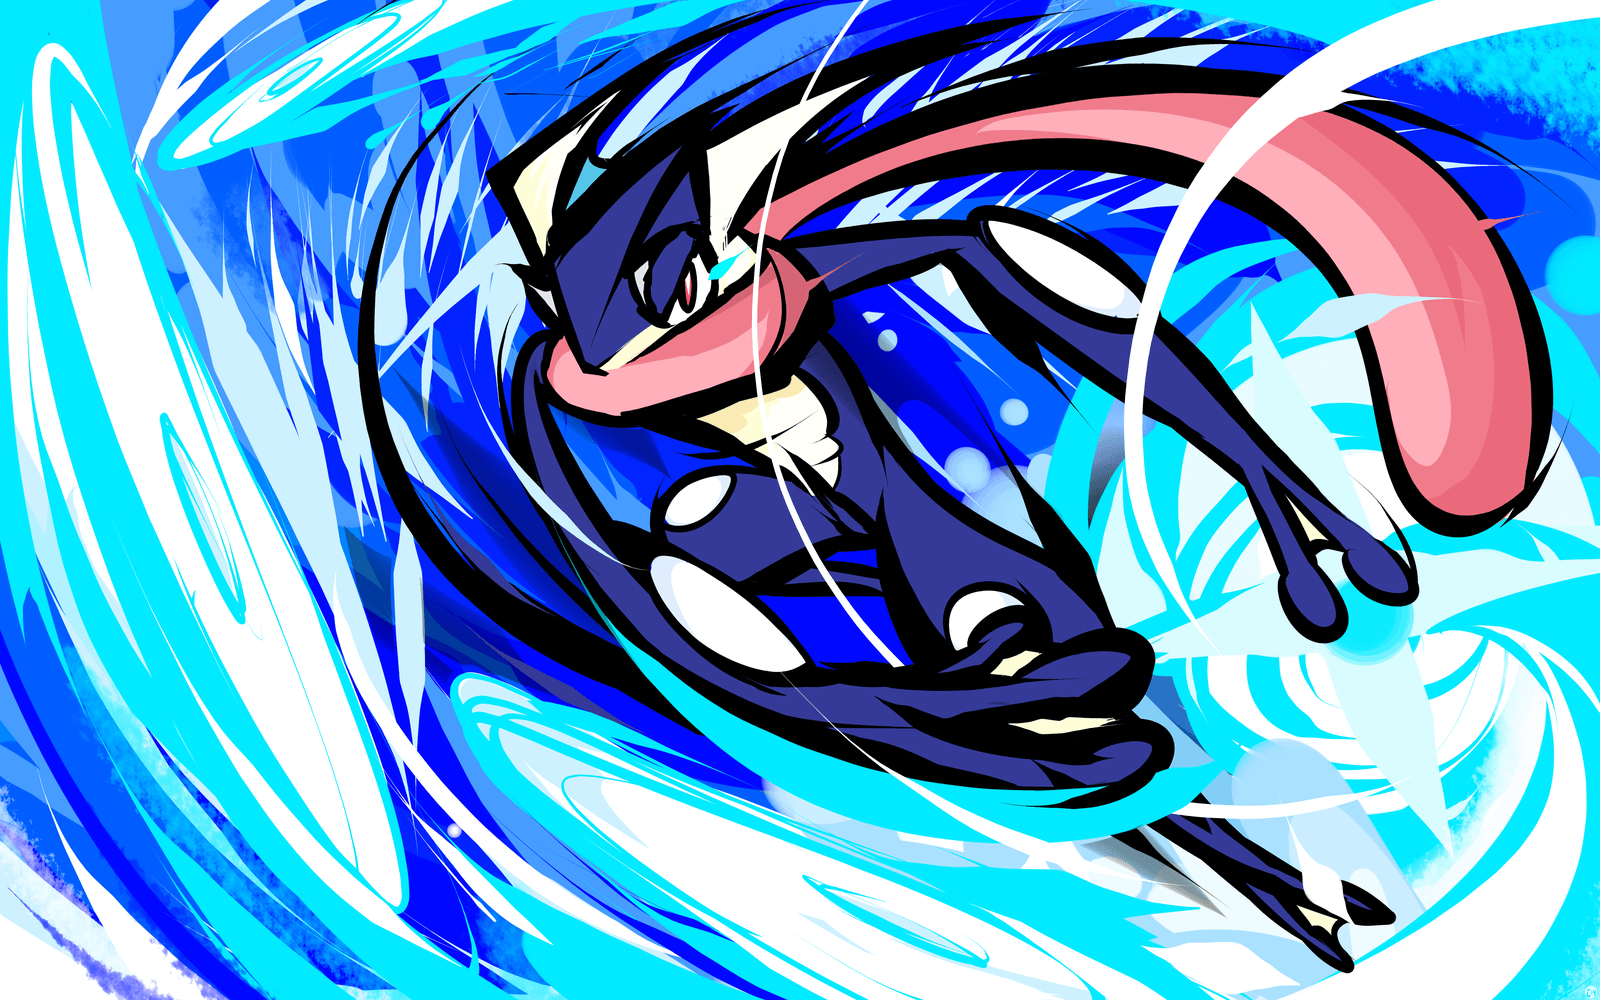 11 Greninja (Pokémon) HD Wallpapers | Background Images - Wallpaper ...